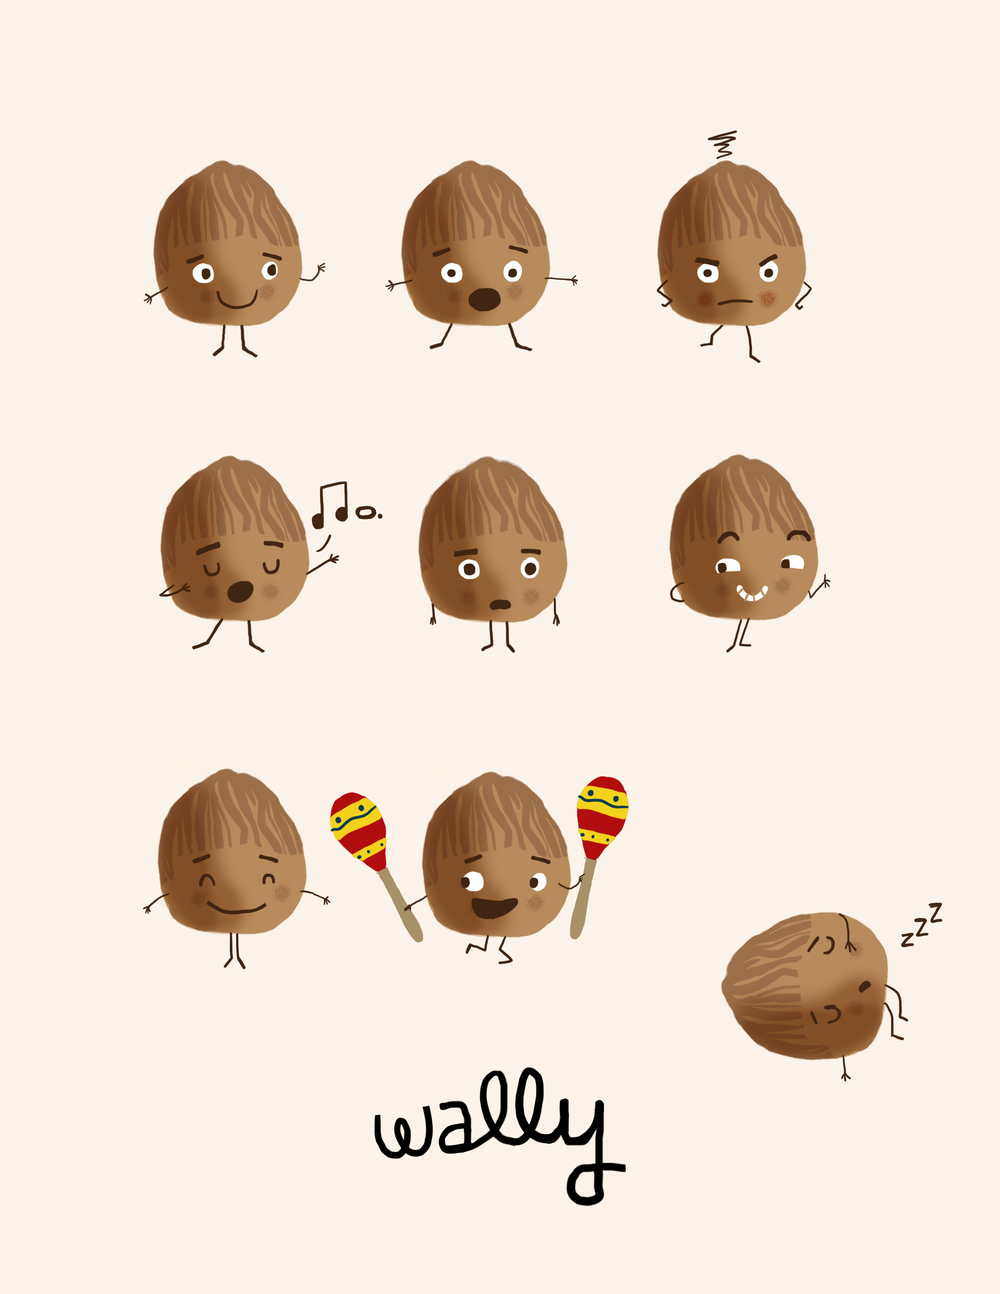 Character sketches of Wally the walnut. His beanie came later as I worked on the interior.